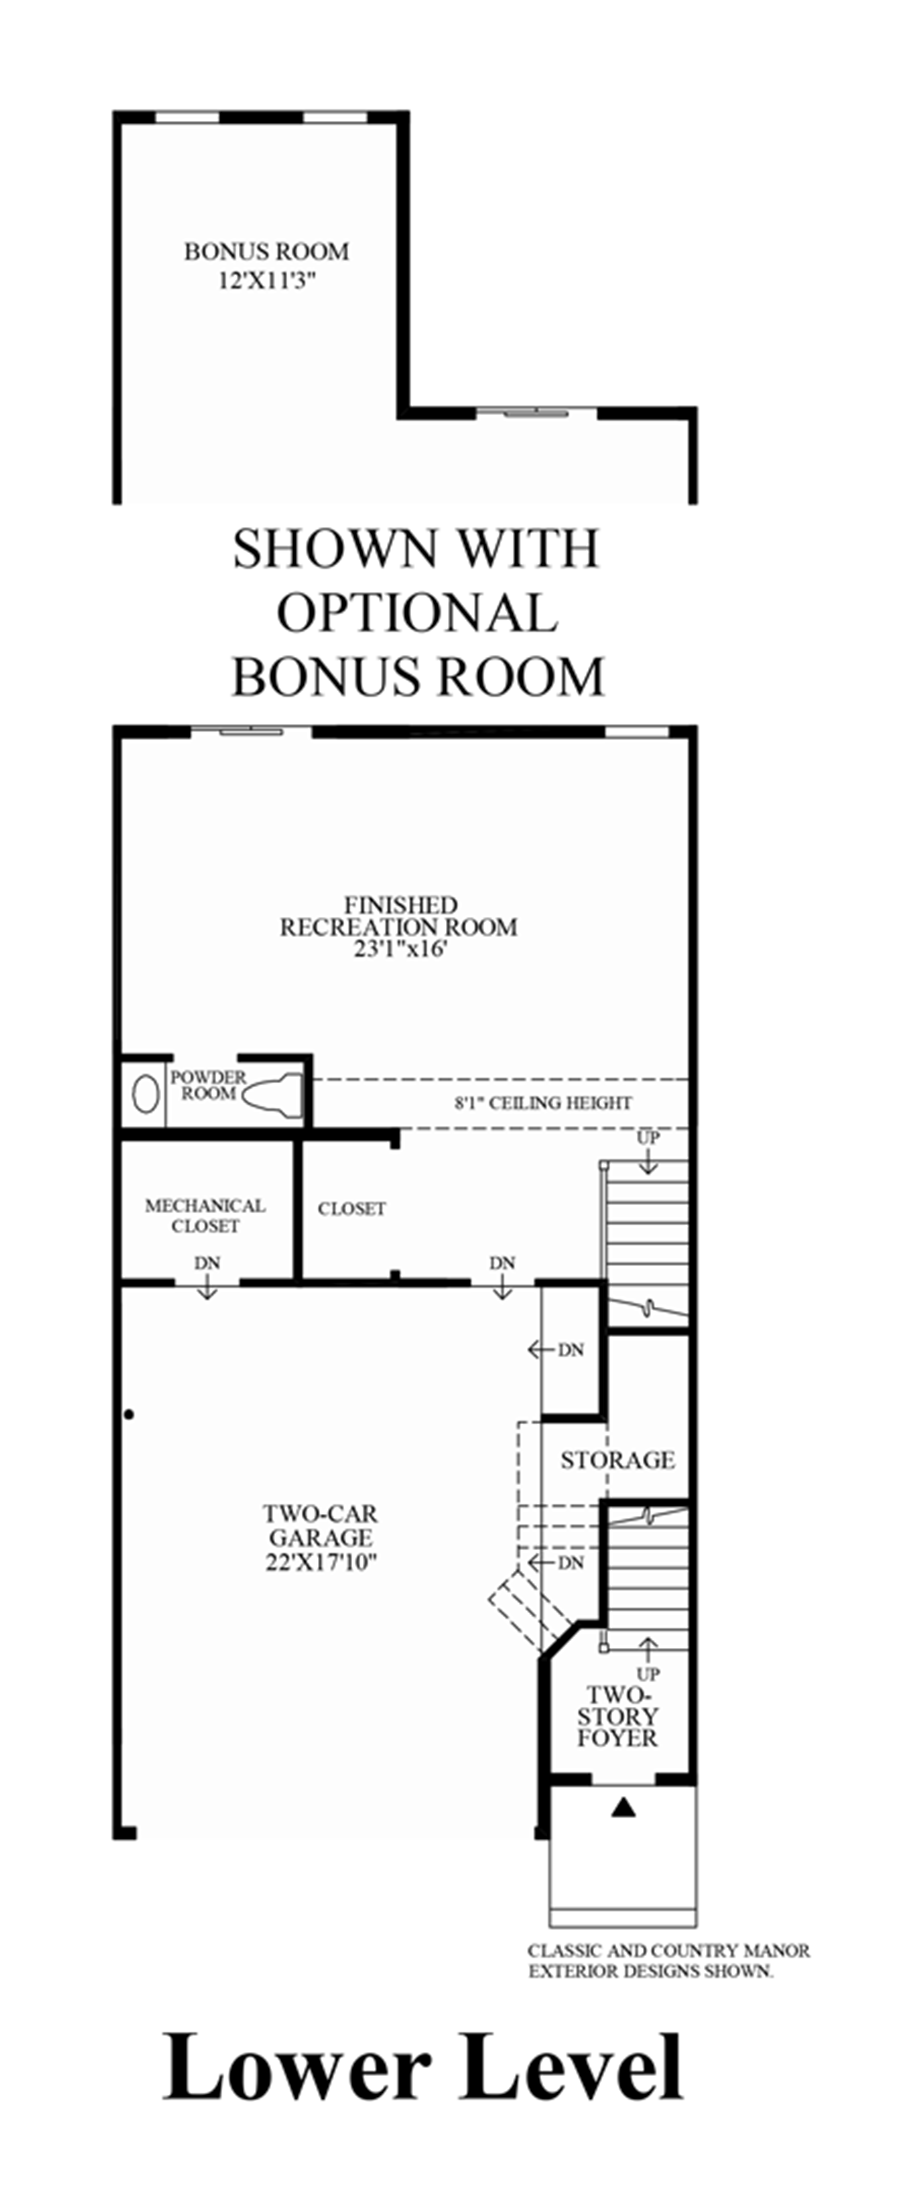 Lower Level (Lower Level Entry) Floor Plan